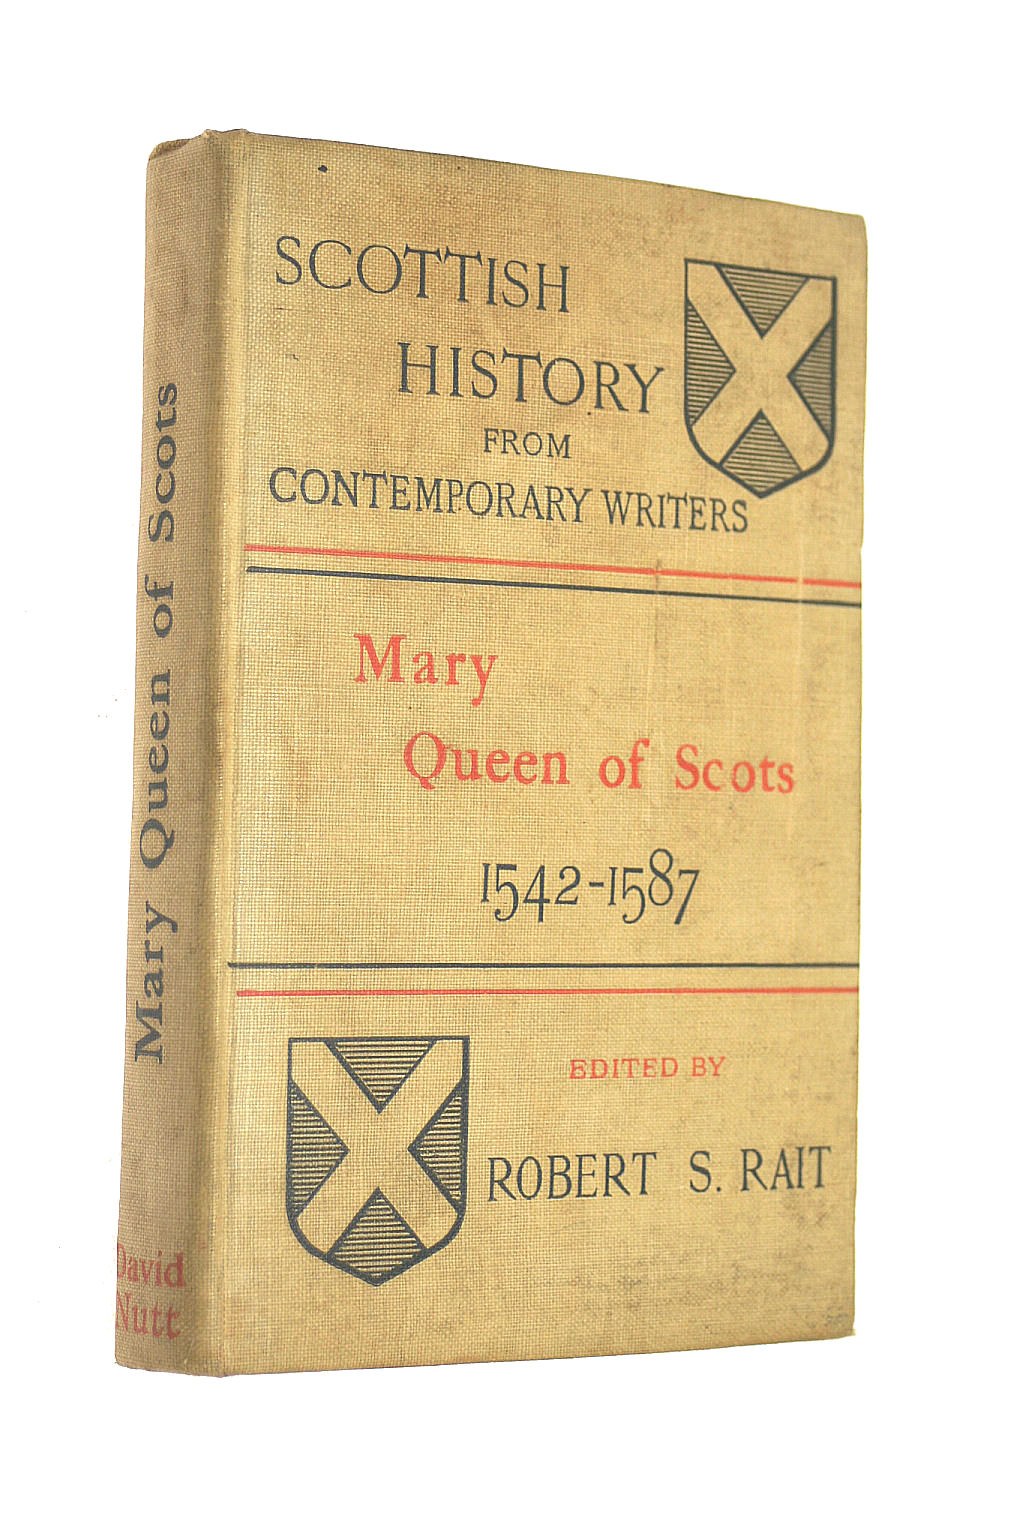 Image for Mary Queen of Scotts 1542-1587 (Scottish History from Contemporary Writers No. II)